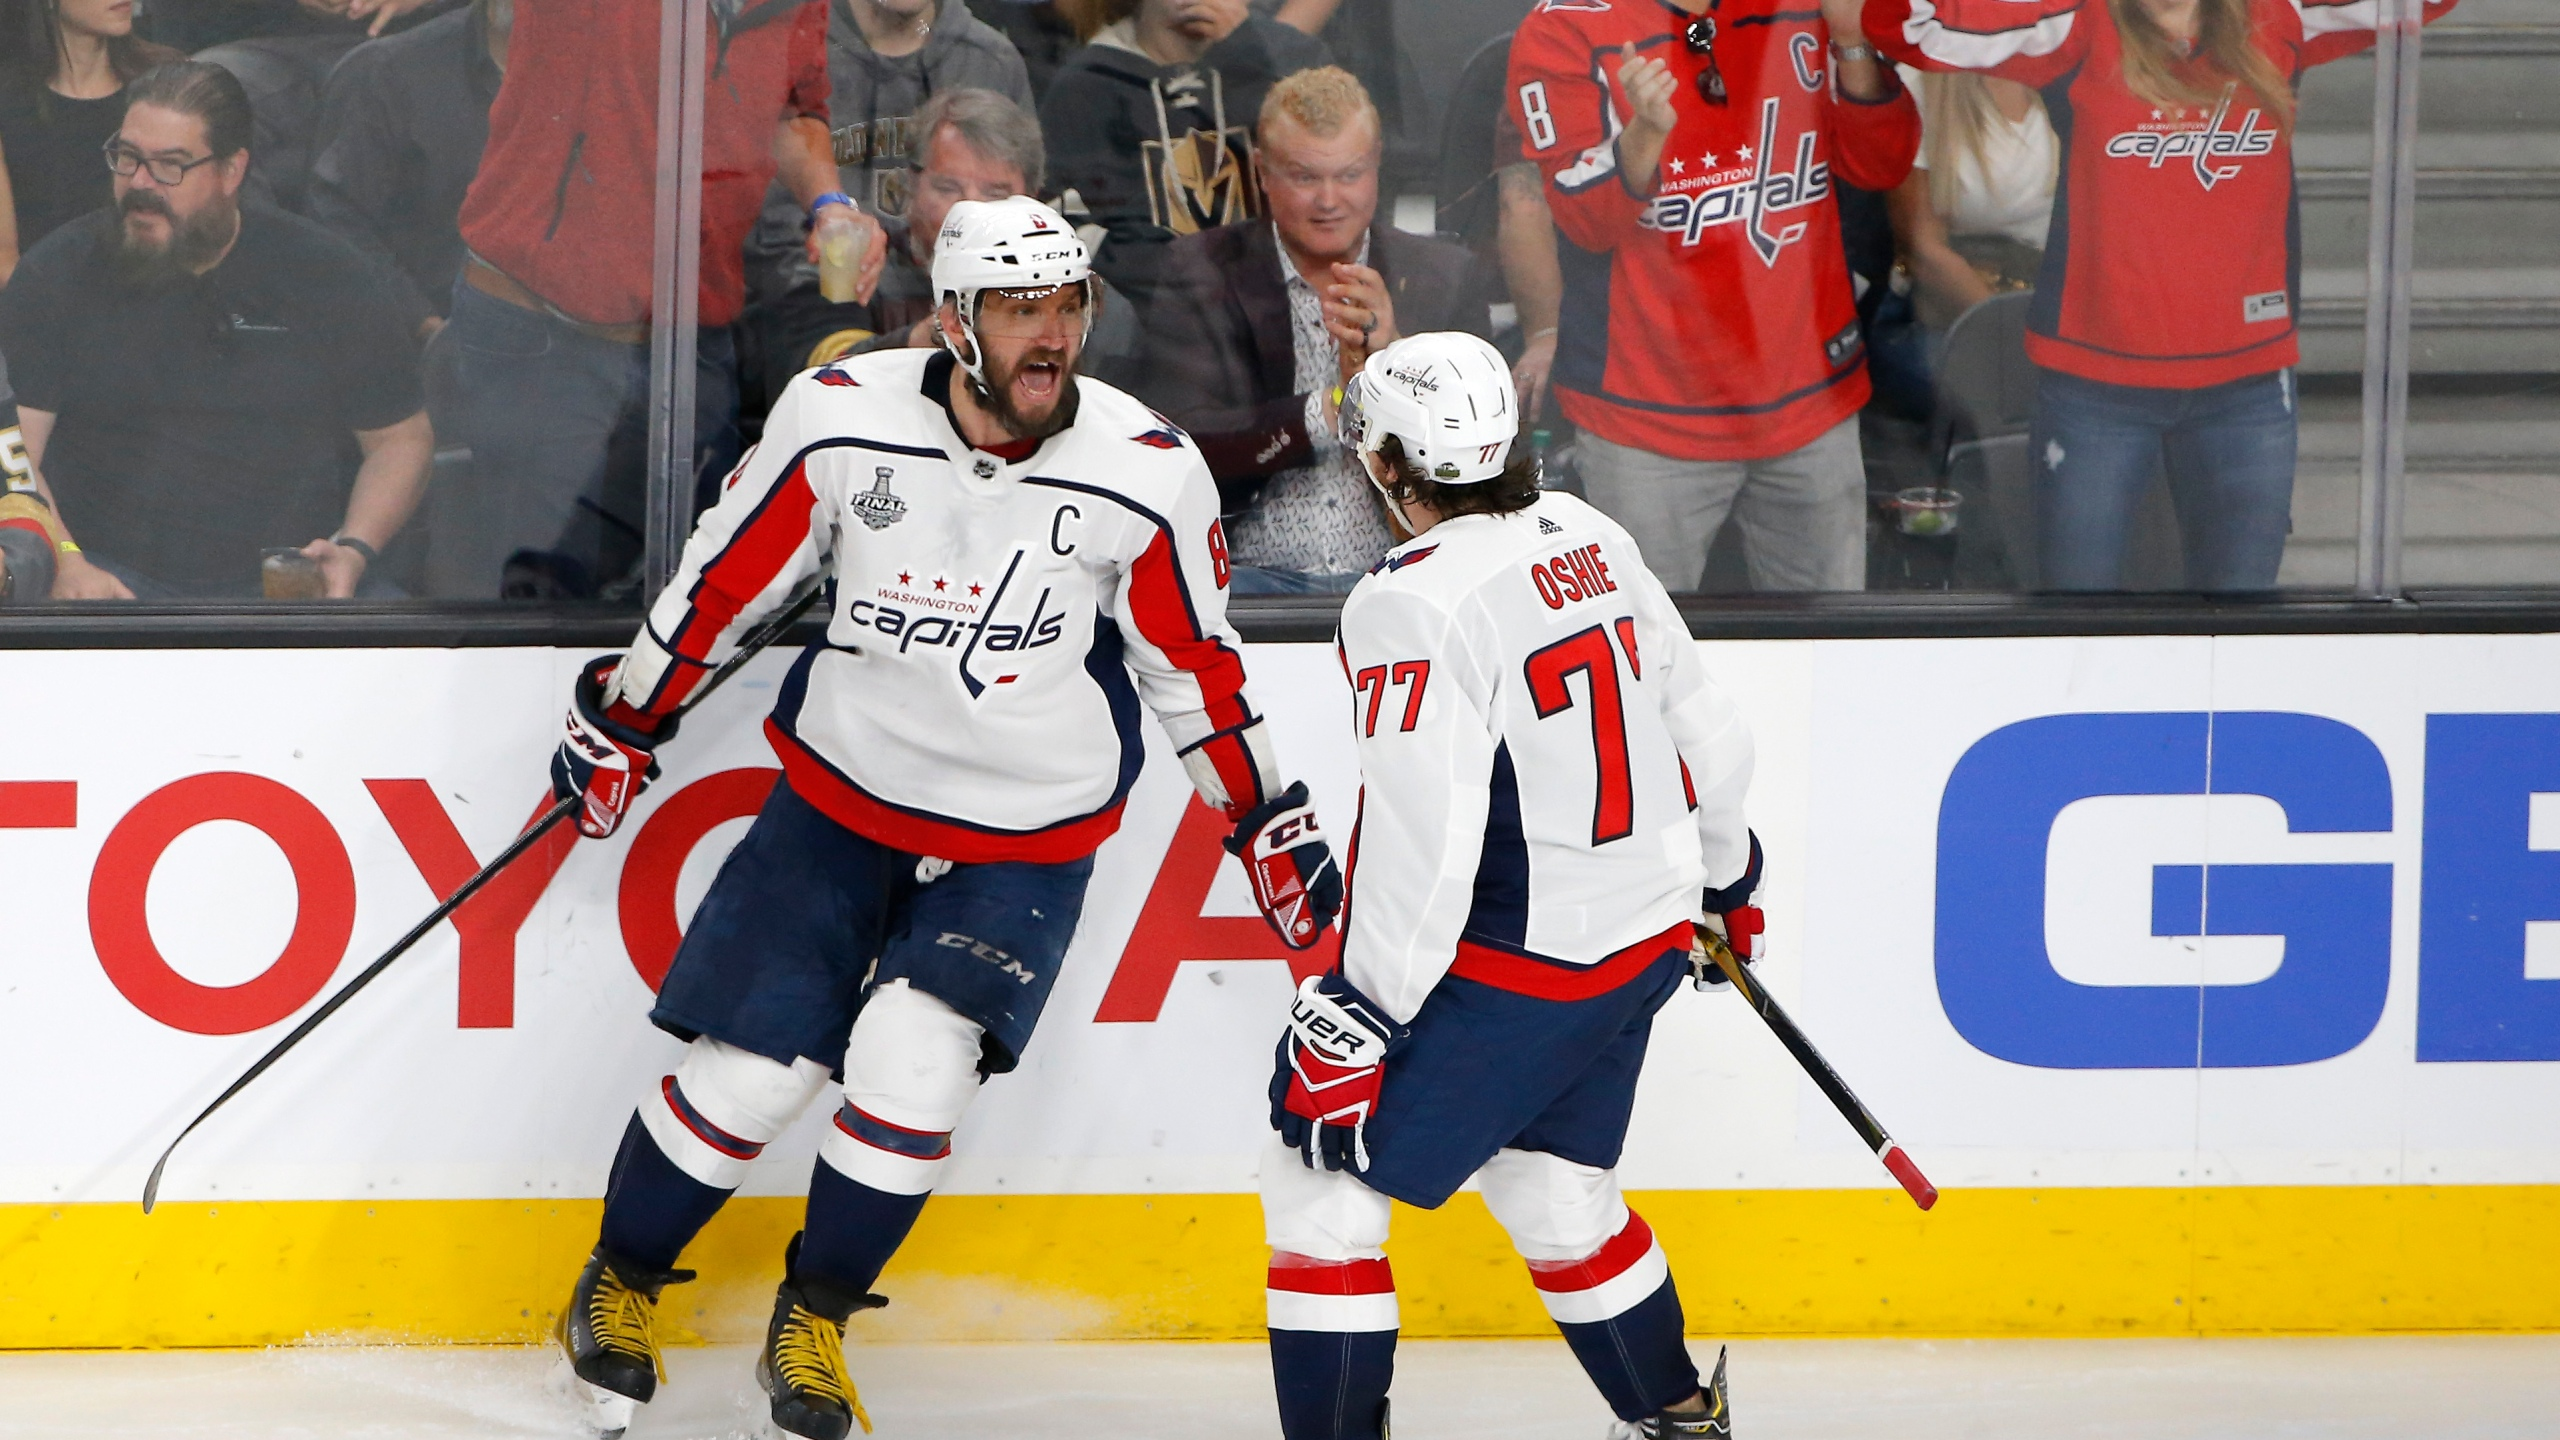 Stanley_Cup_Capitals_Golden_Knights_Hockey_35823-159532.jpg19887137